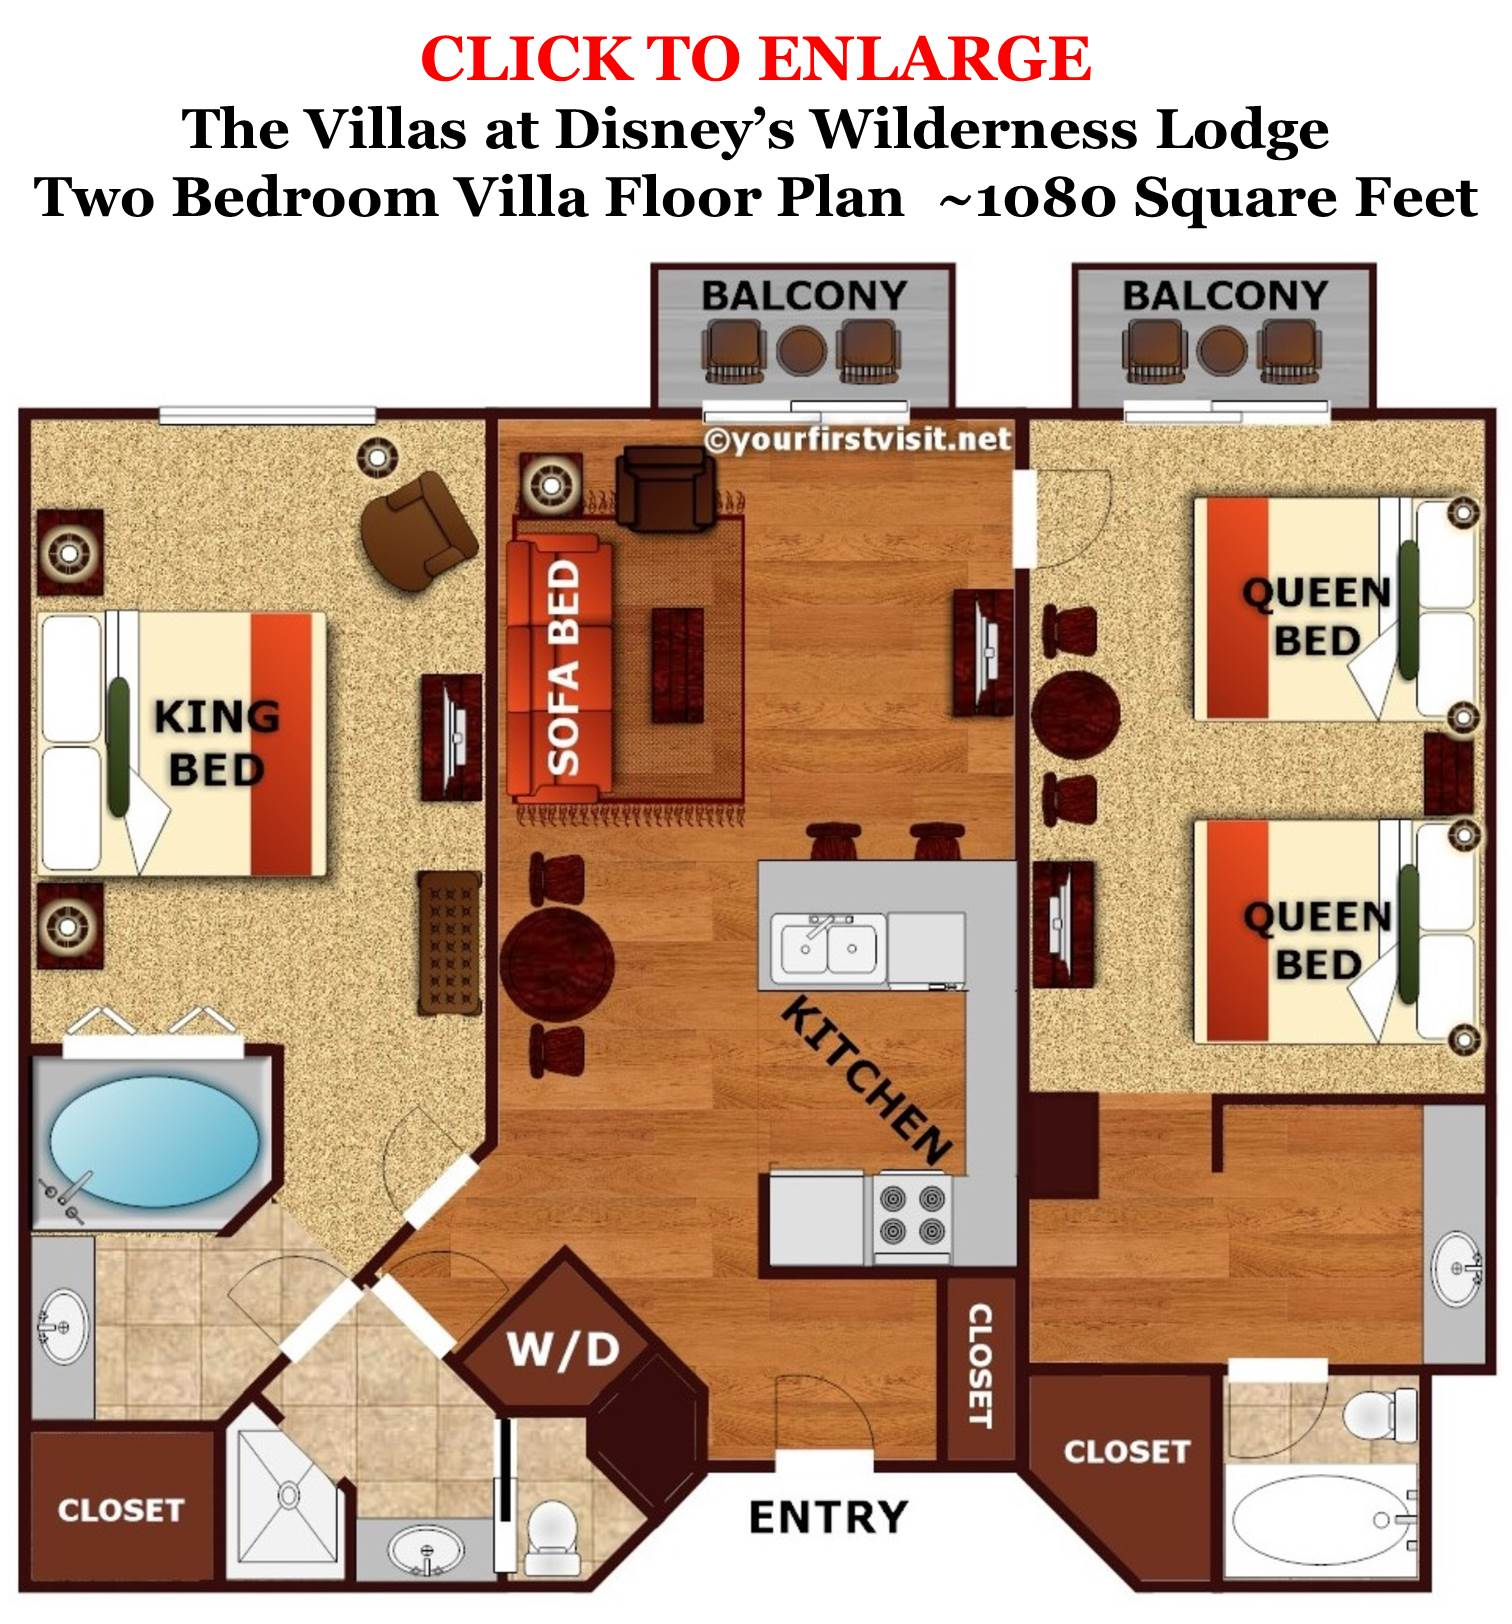 Sleeping space options and bed types at walt disney world for Two bedroom plan